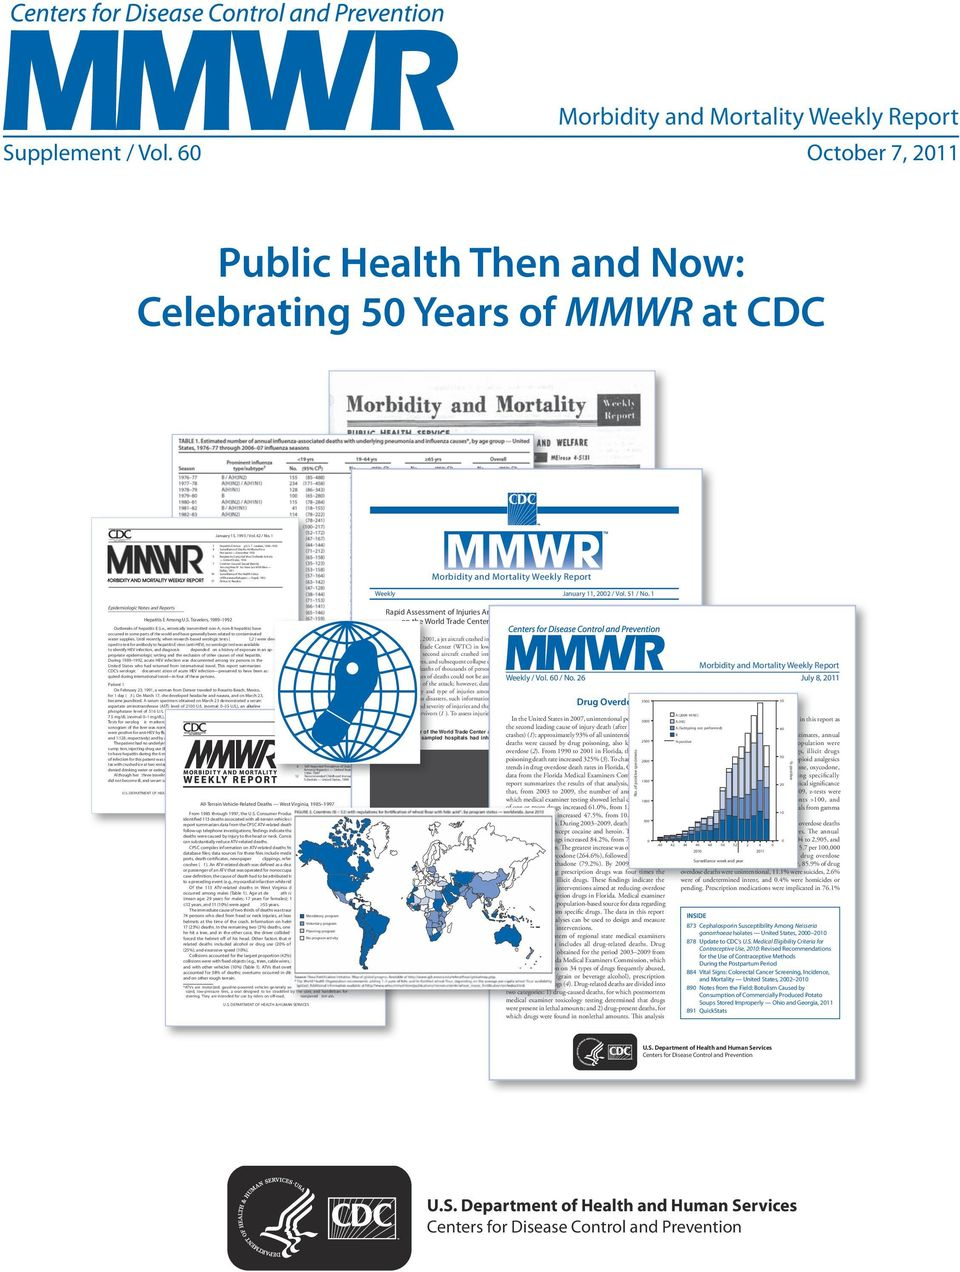 pplement / Vol. 60 October 7, 2011 Public Health Then and Now: Celebrating 50 Years of MMWR at CDC January 15, 1993 / Vol. 42 / No. 1 1 Hepatitis E Amon g U.S.